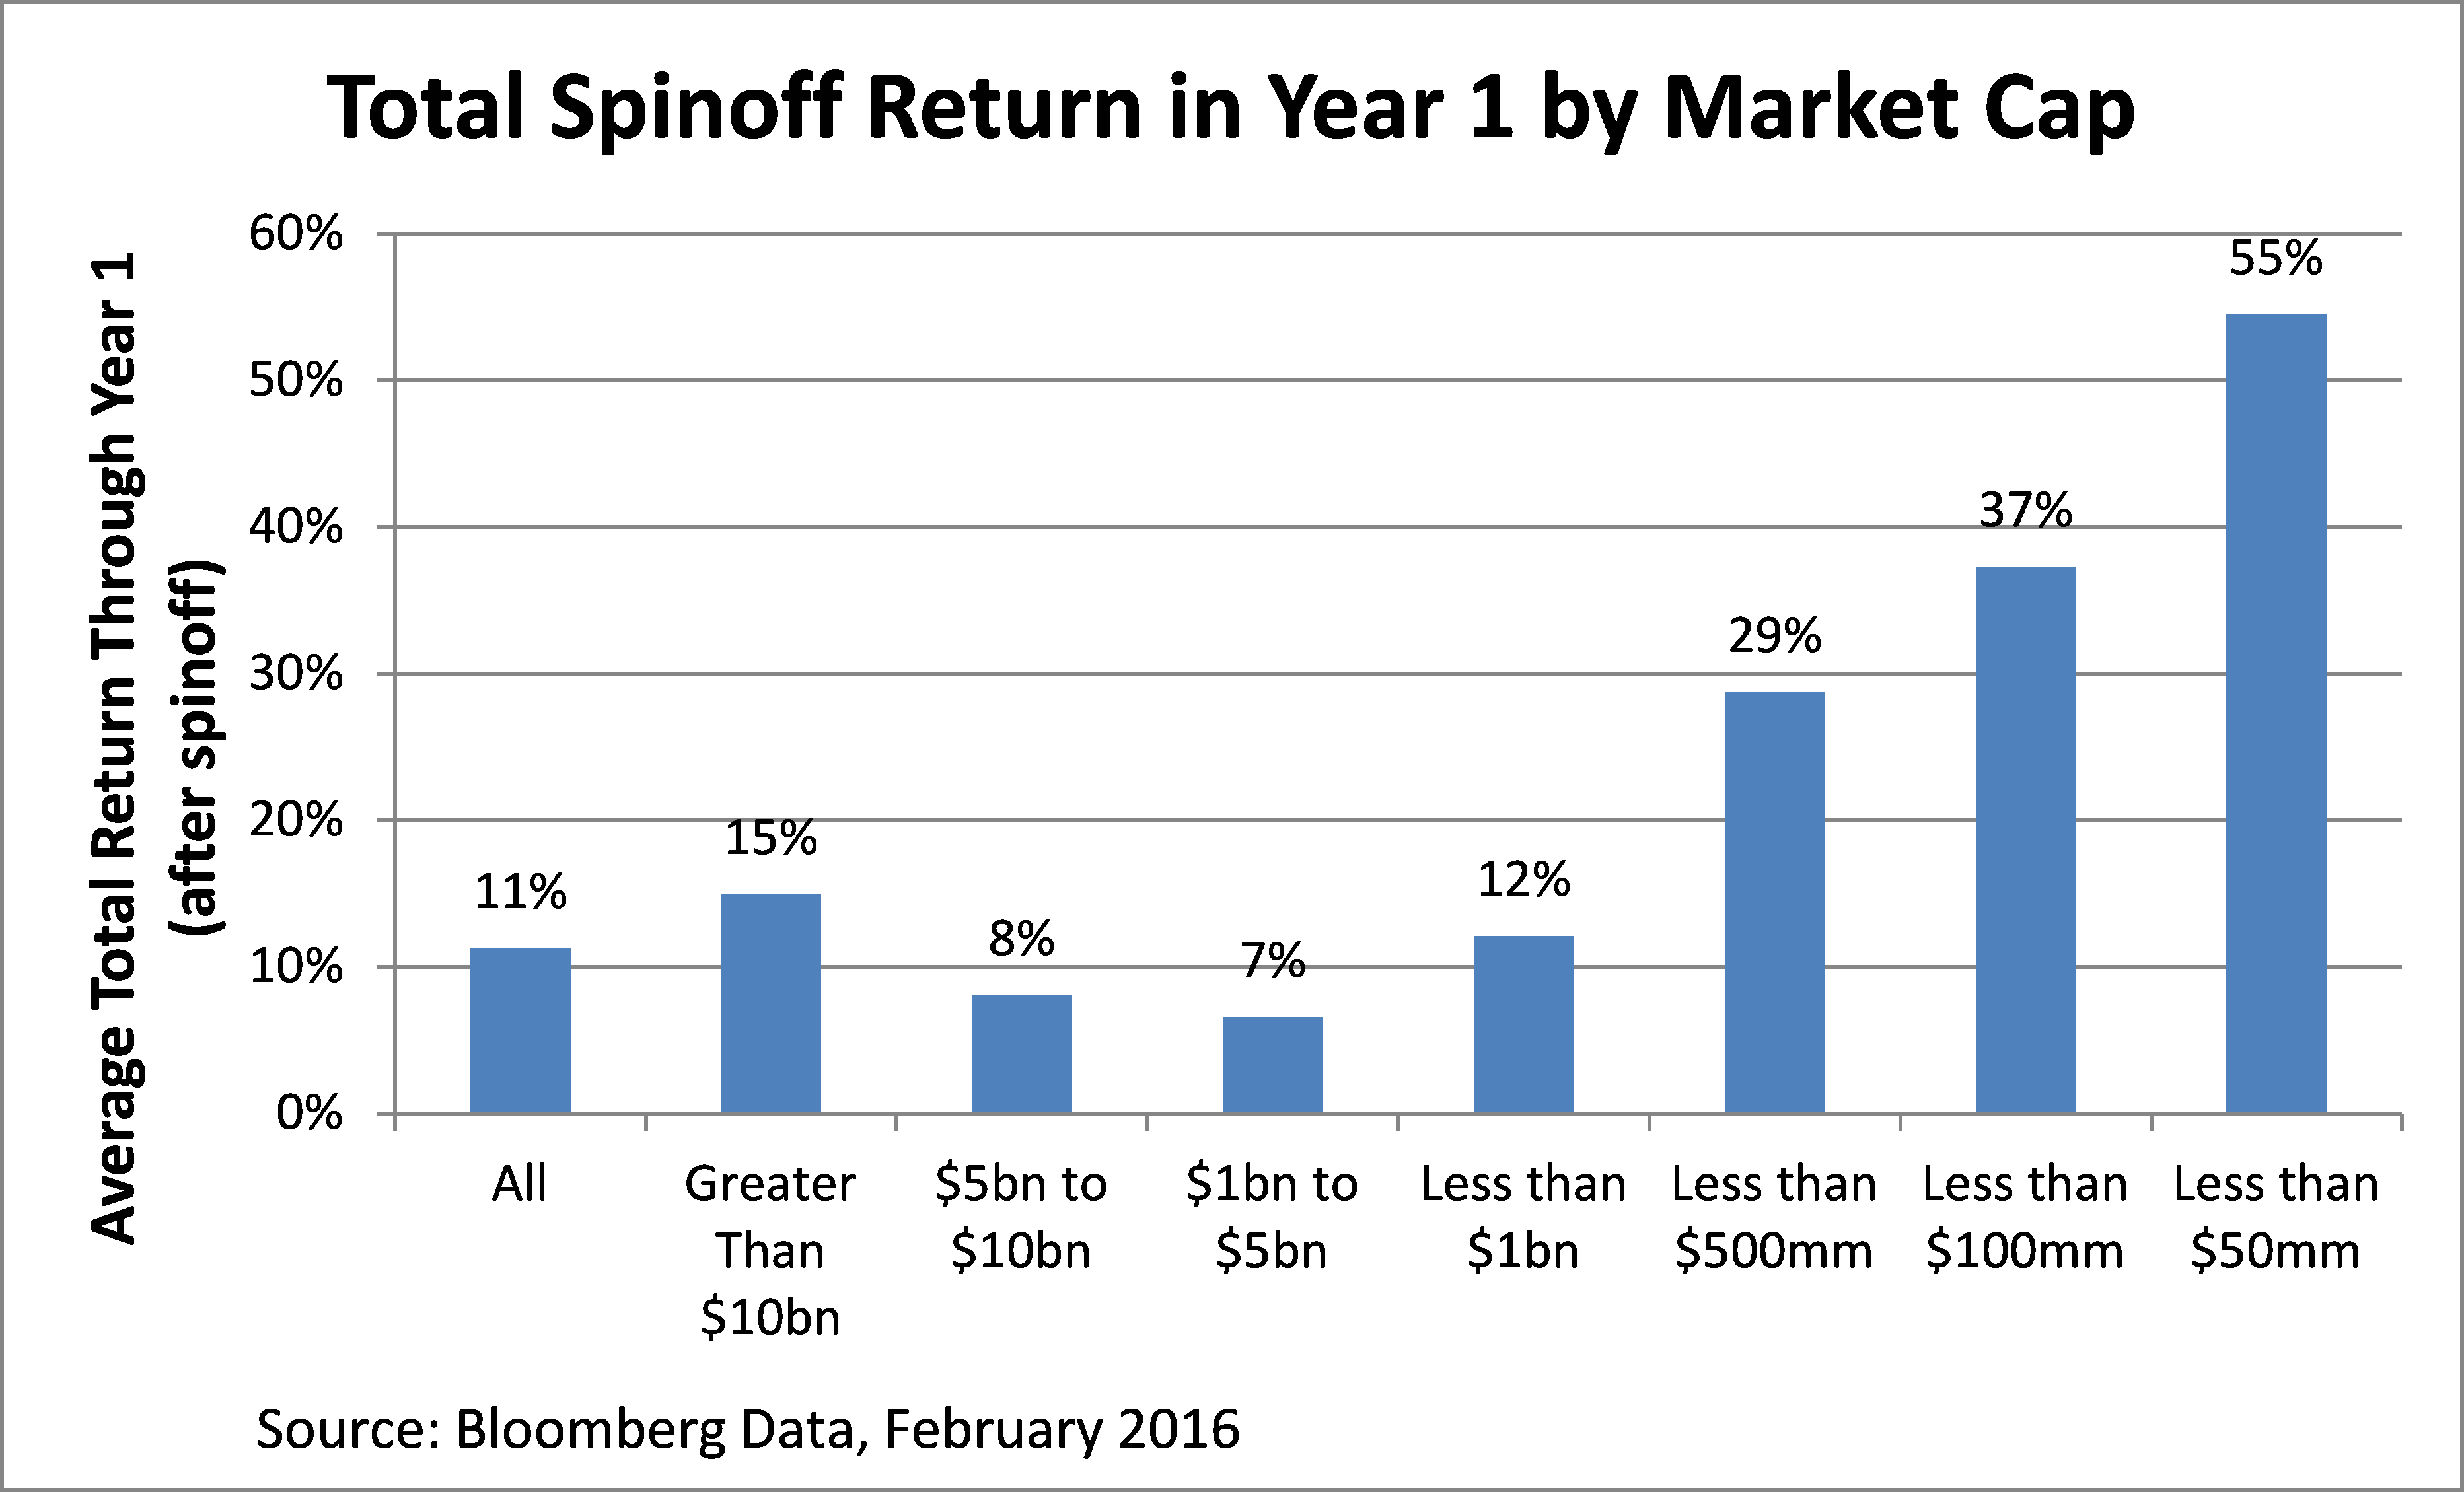 stock spinoff 1 year performance by market cap